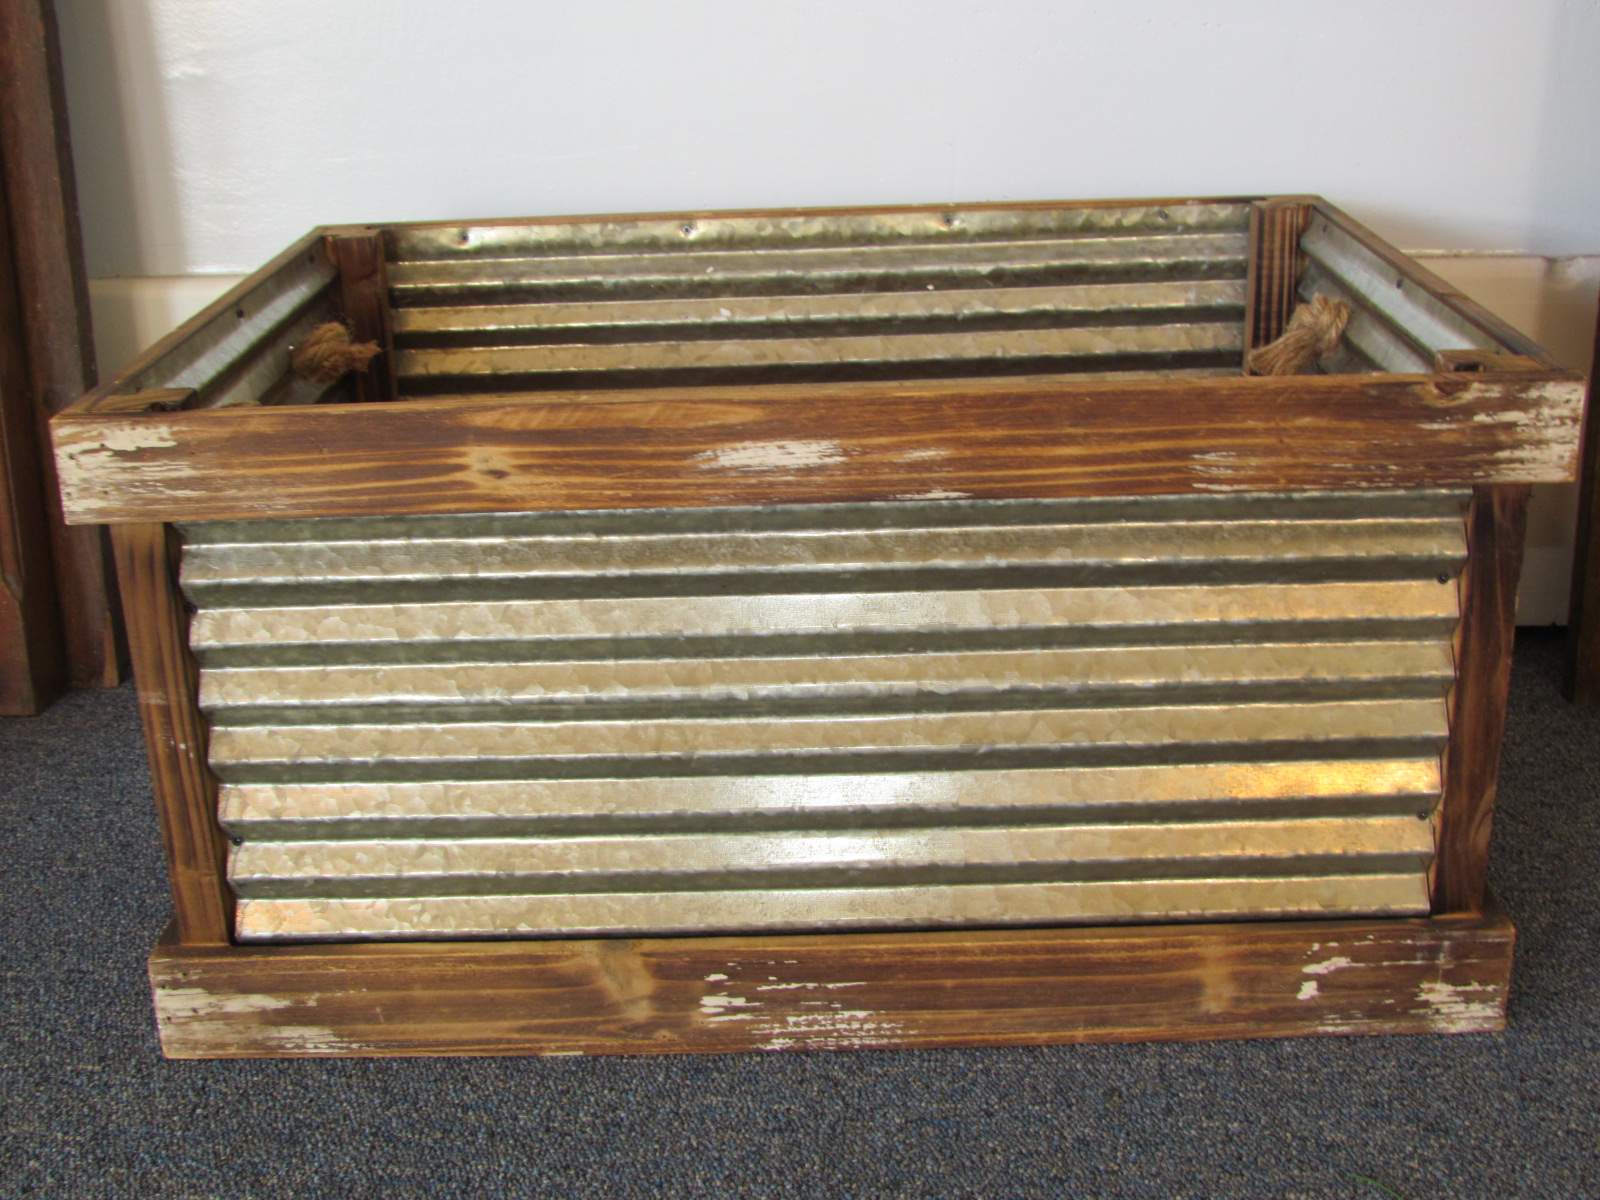 Large Cedar Lined Crate $8 / Day